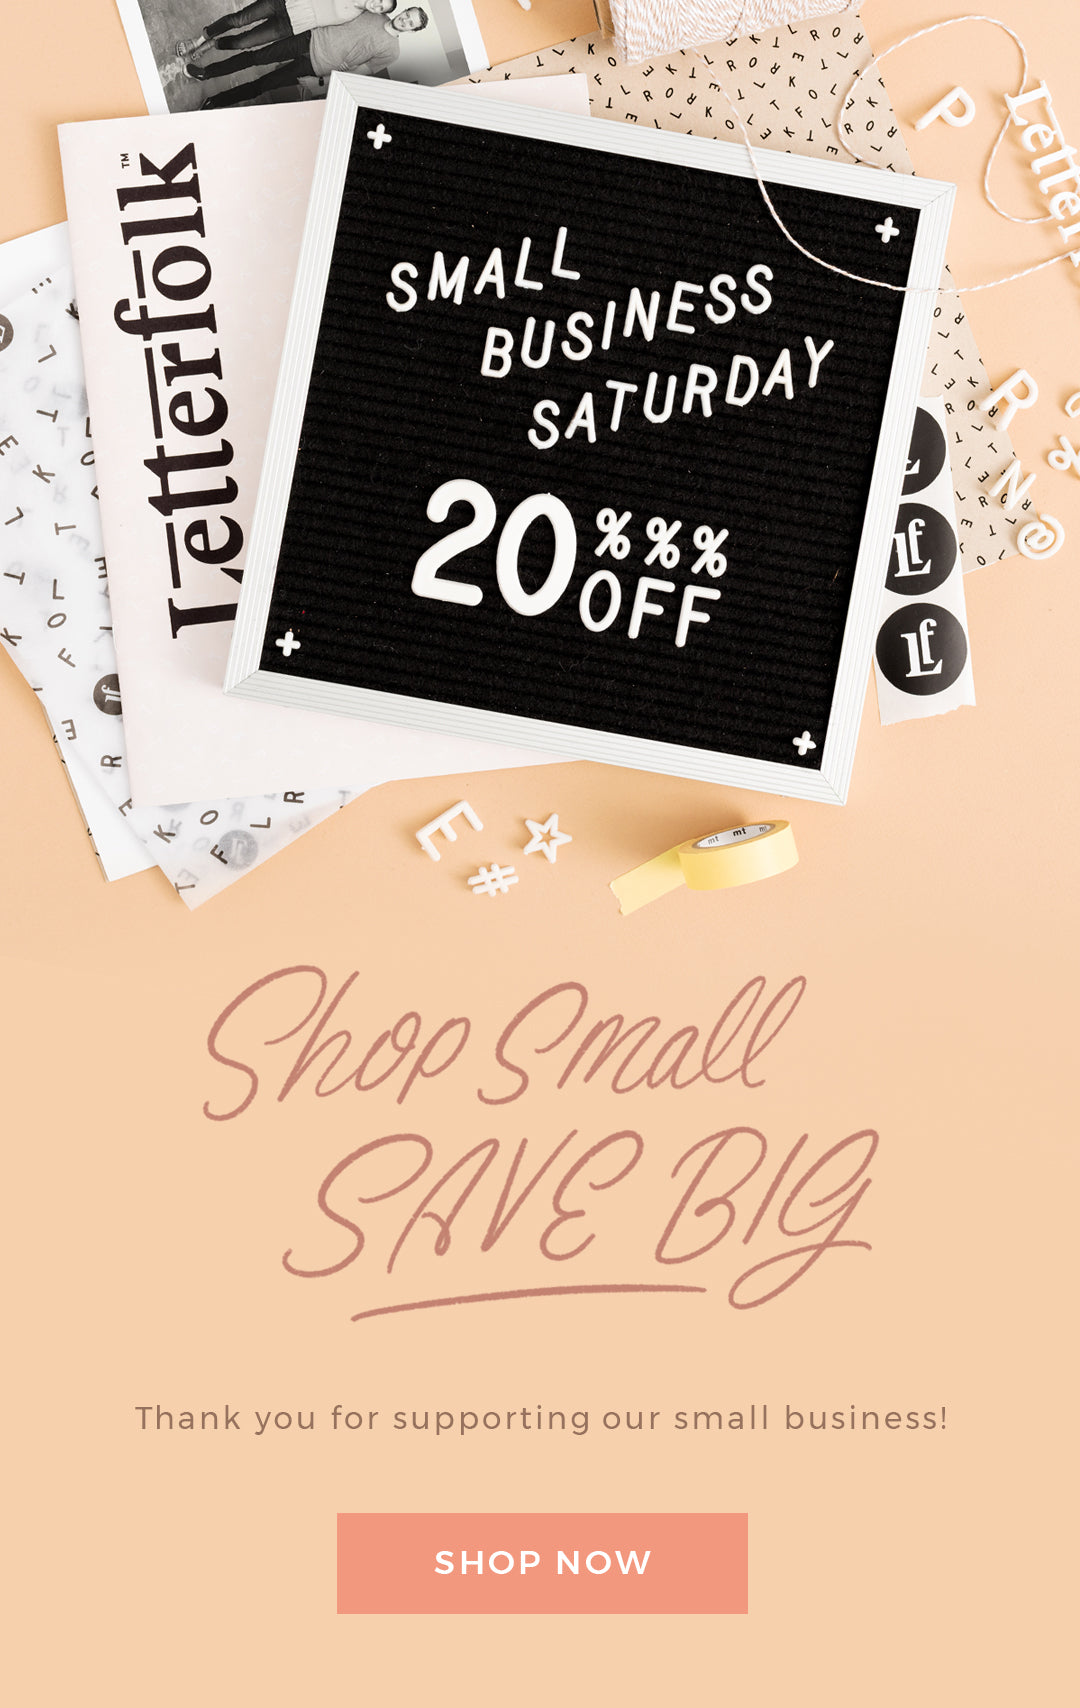 Letterfolk's Small Business Saturday Sale